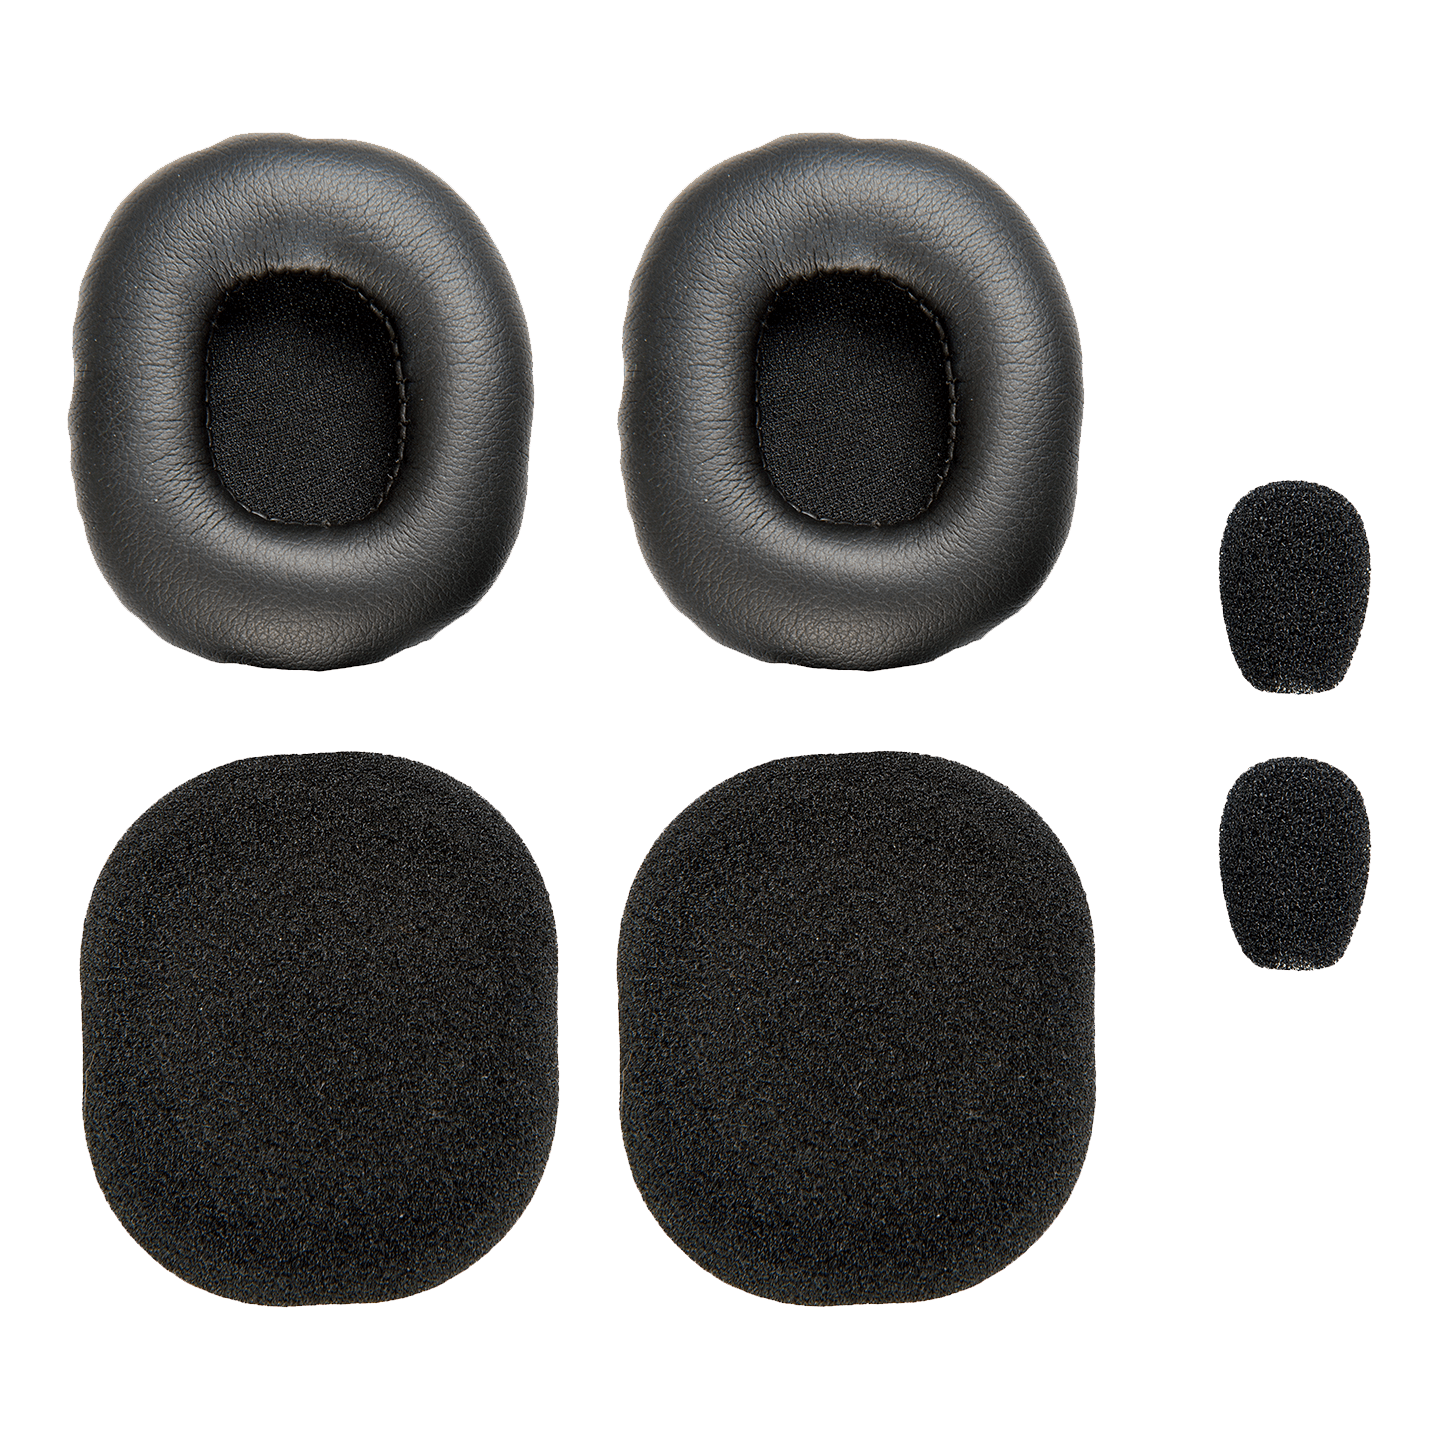 BlueParrott B350-XT Replacement Cushion Kit